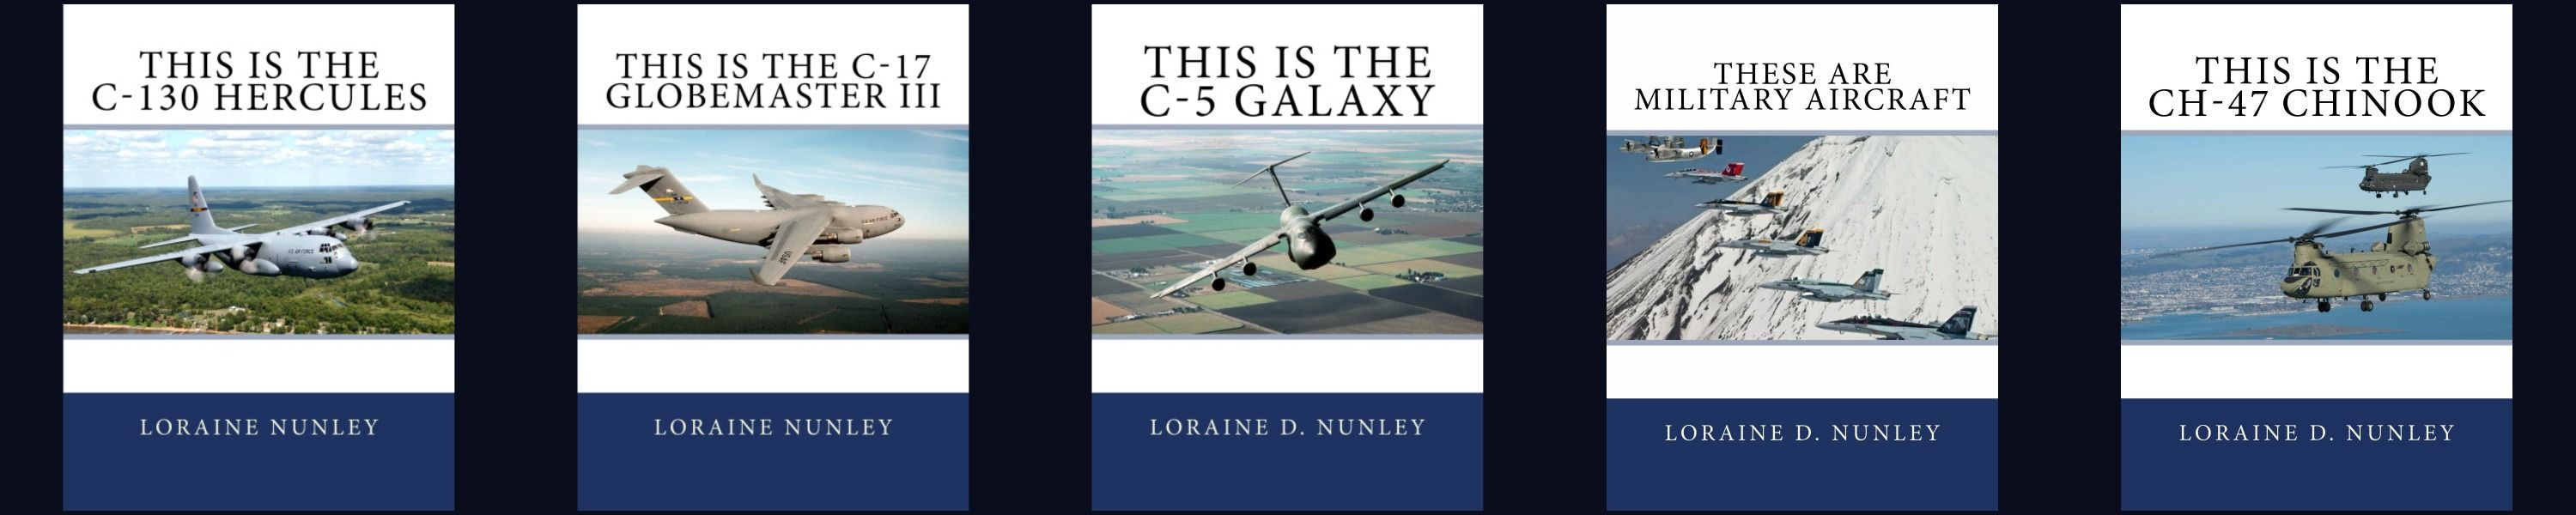 Military aircraft series for children by loraine d nunley